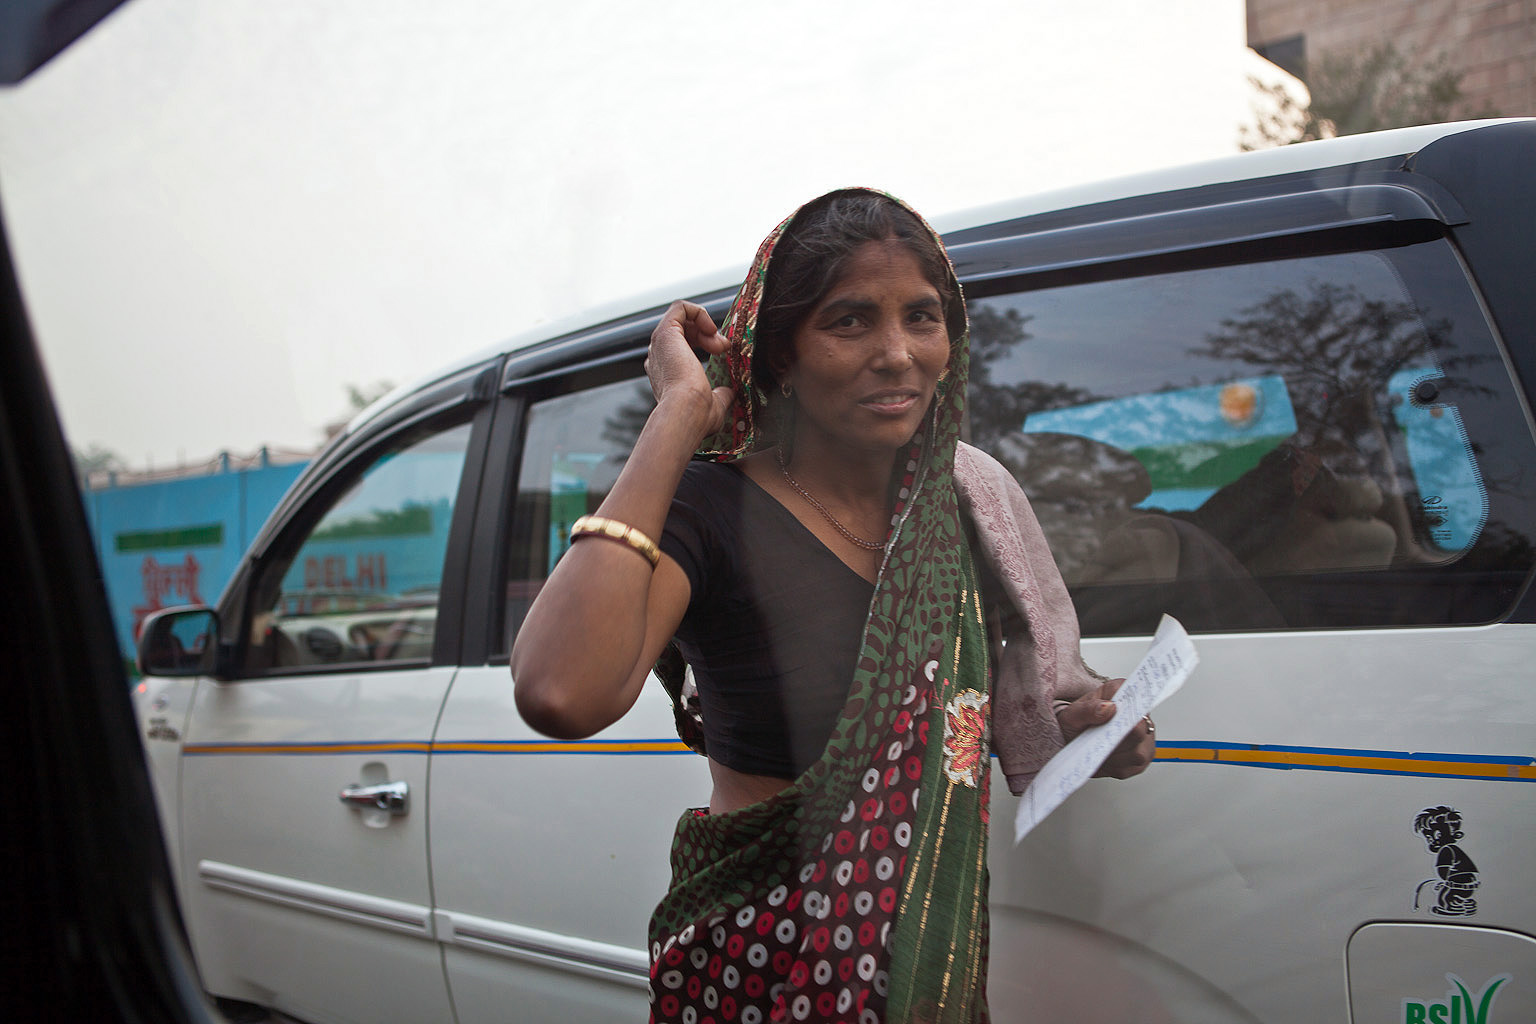 One of my all time favourites. This lady was trying to sell something to the commuters on their way home. I was about to put my camera away but shot through the glass at the last minute.